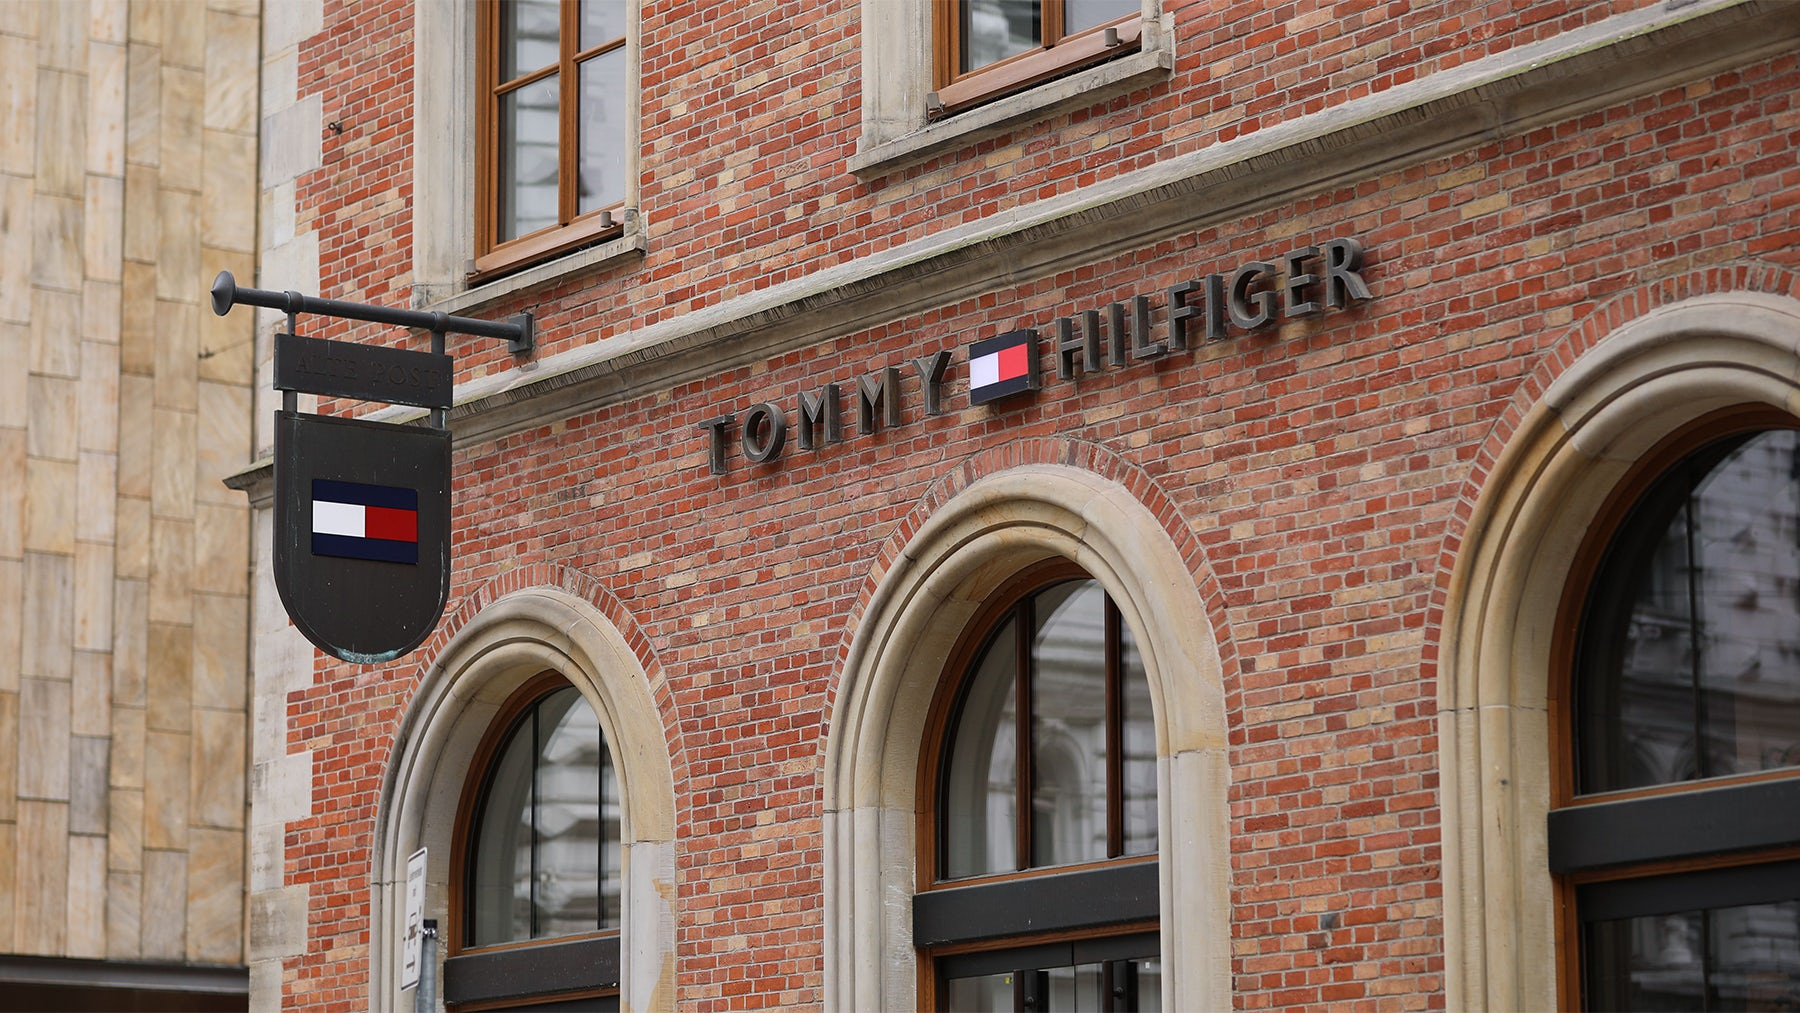 A Tommy Hilfiger store in Hamburg, Germany. Getty Images.